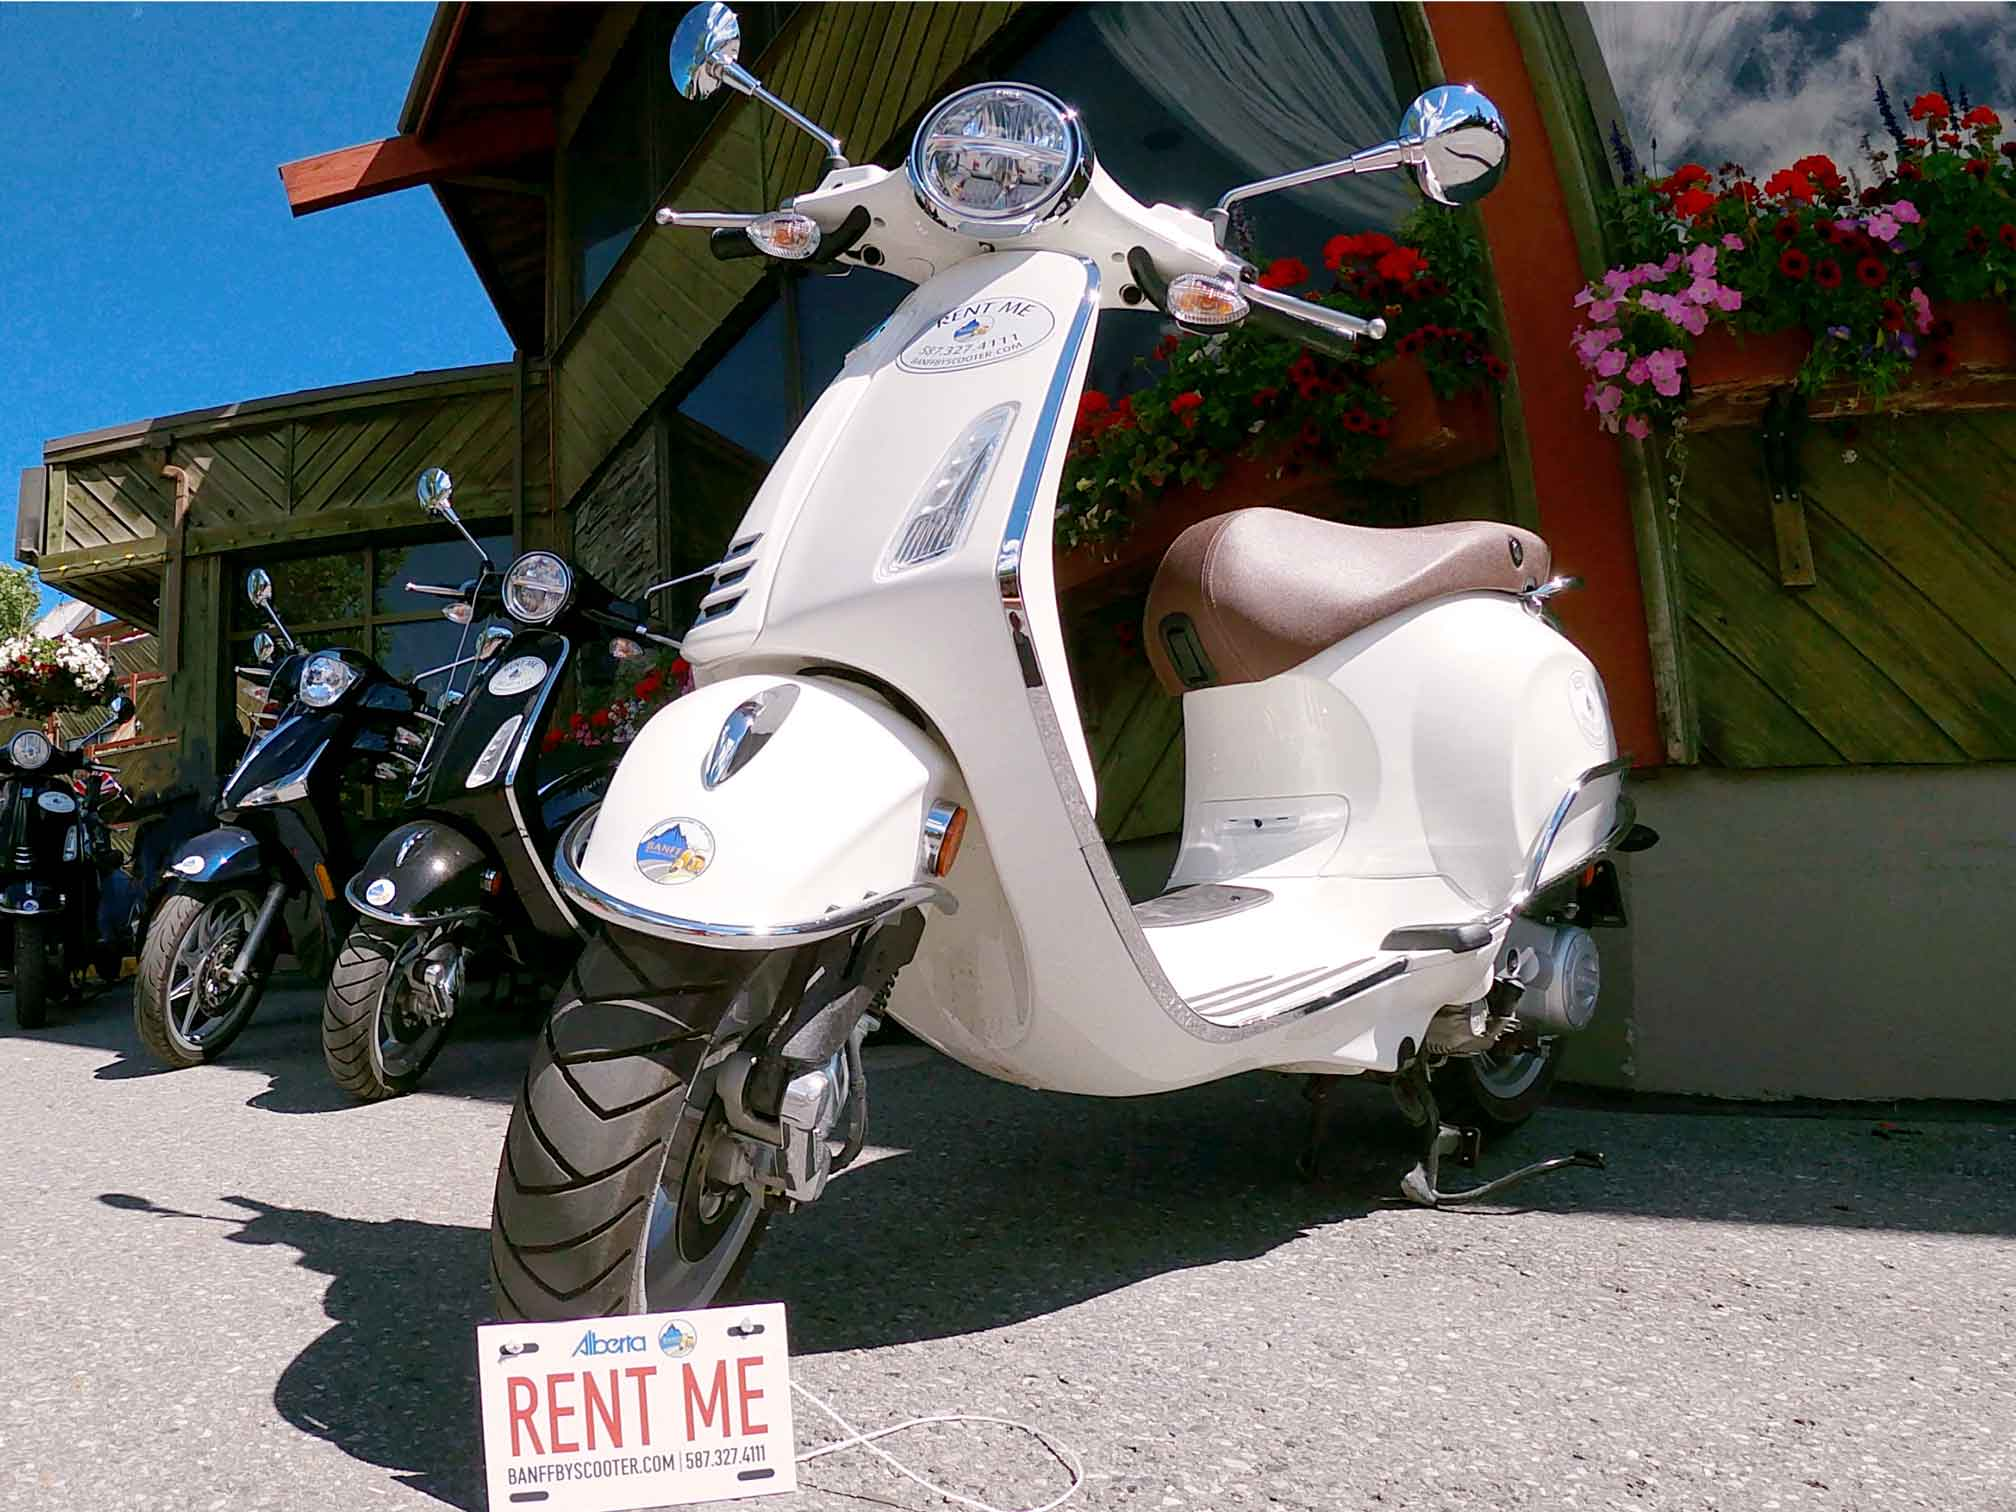 Scooters lined off with rent me sign at Banff By Scooter